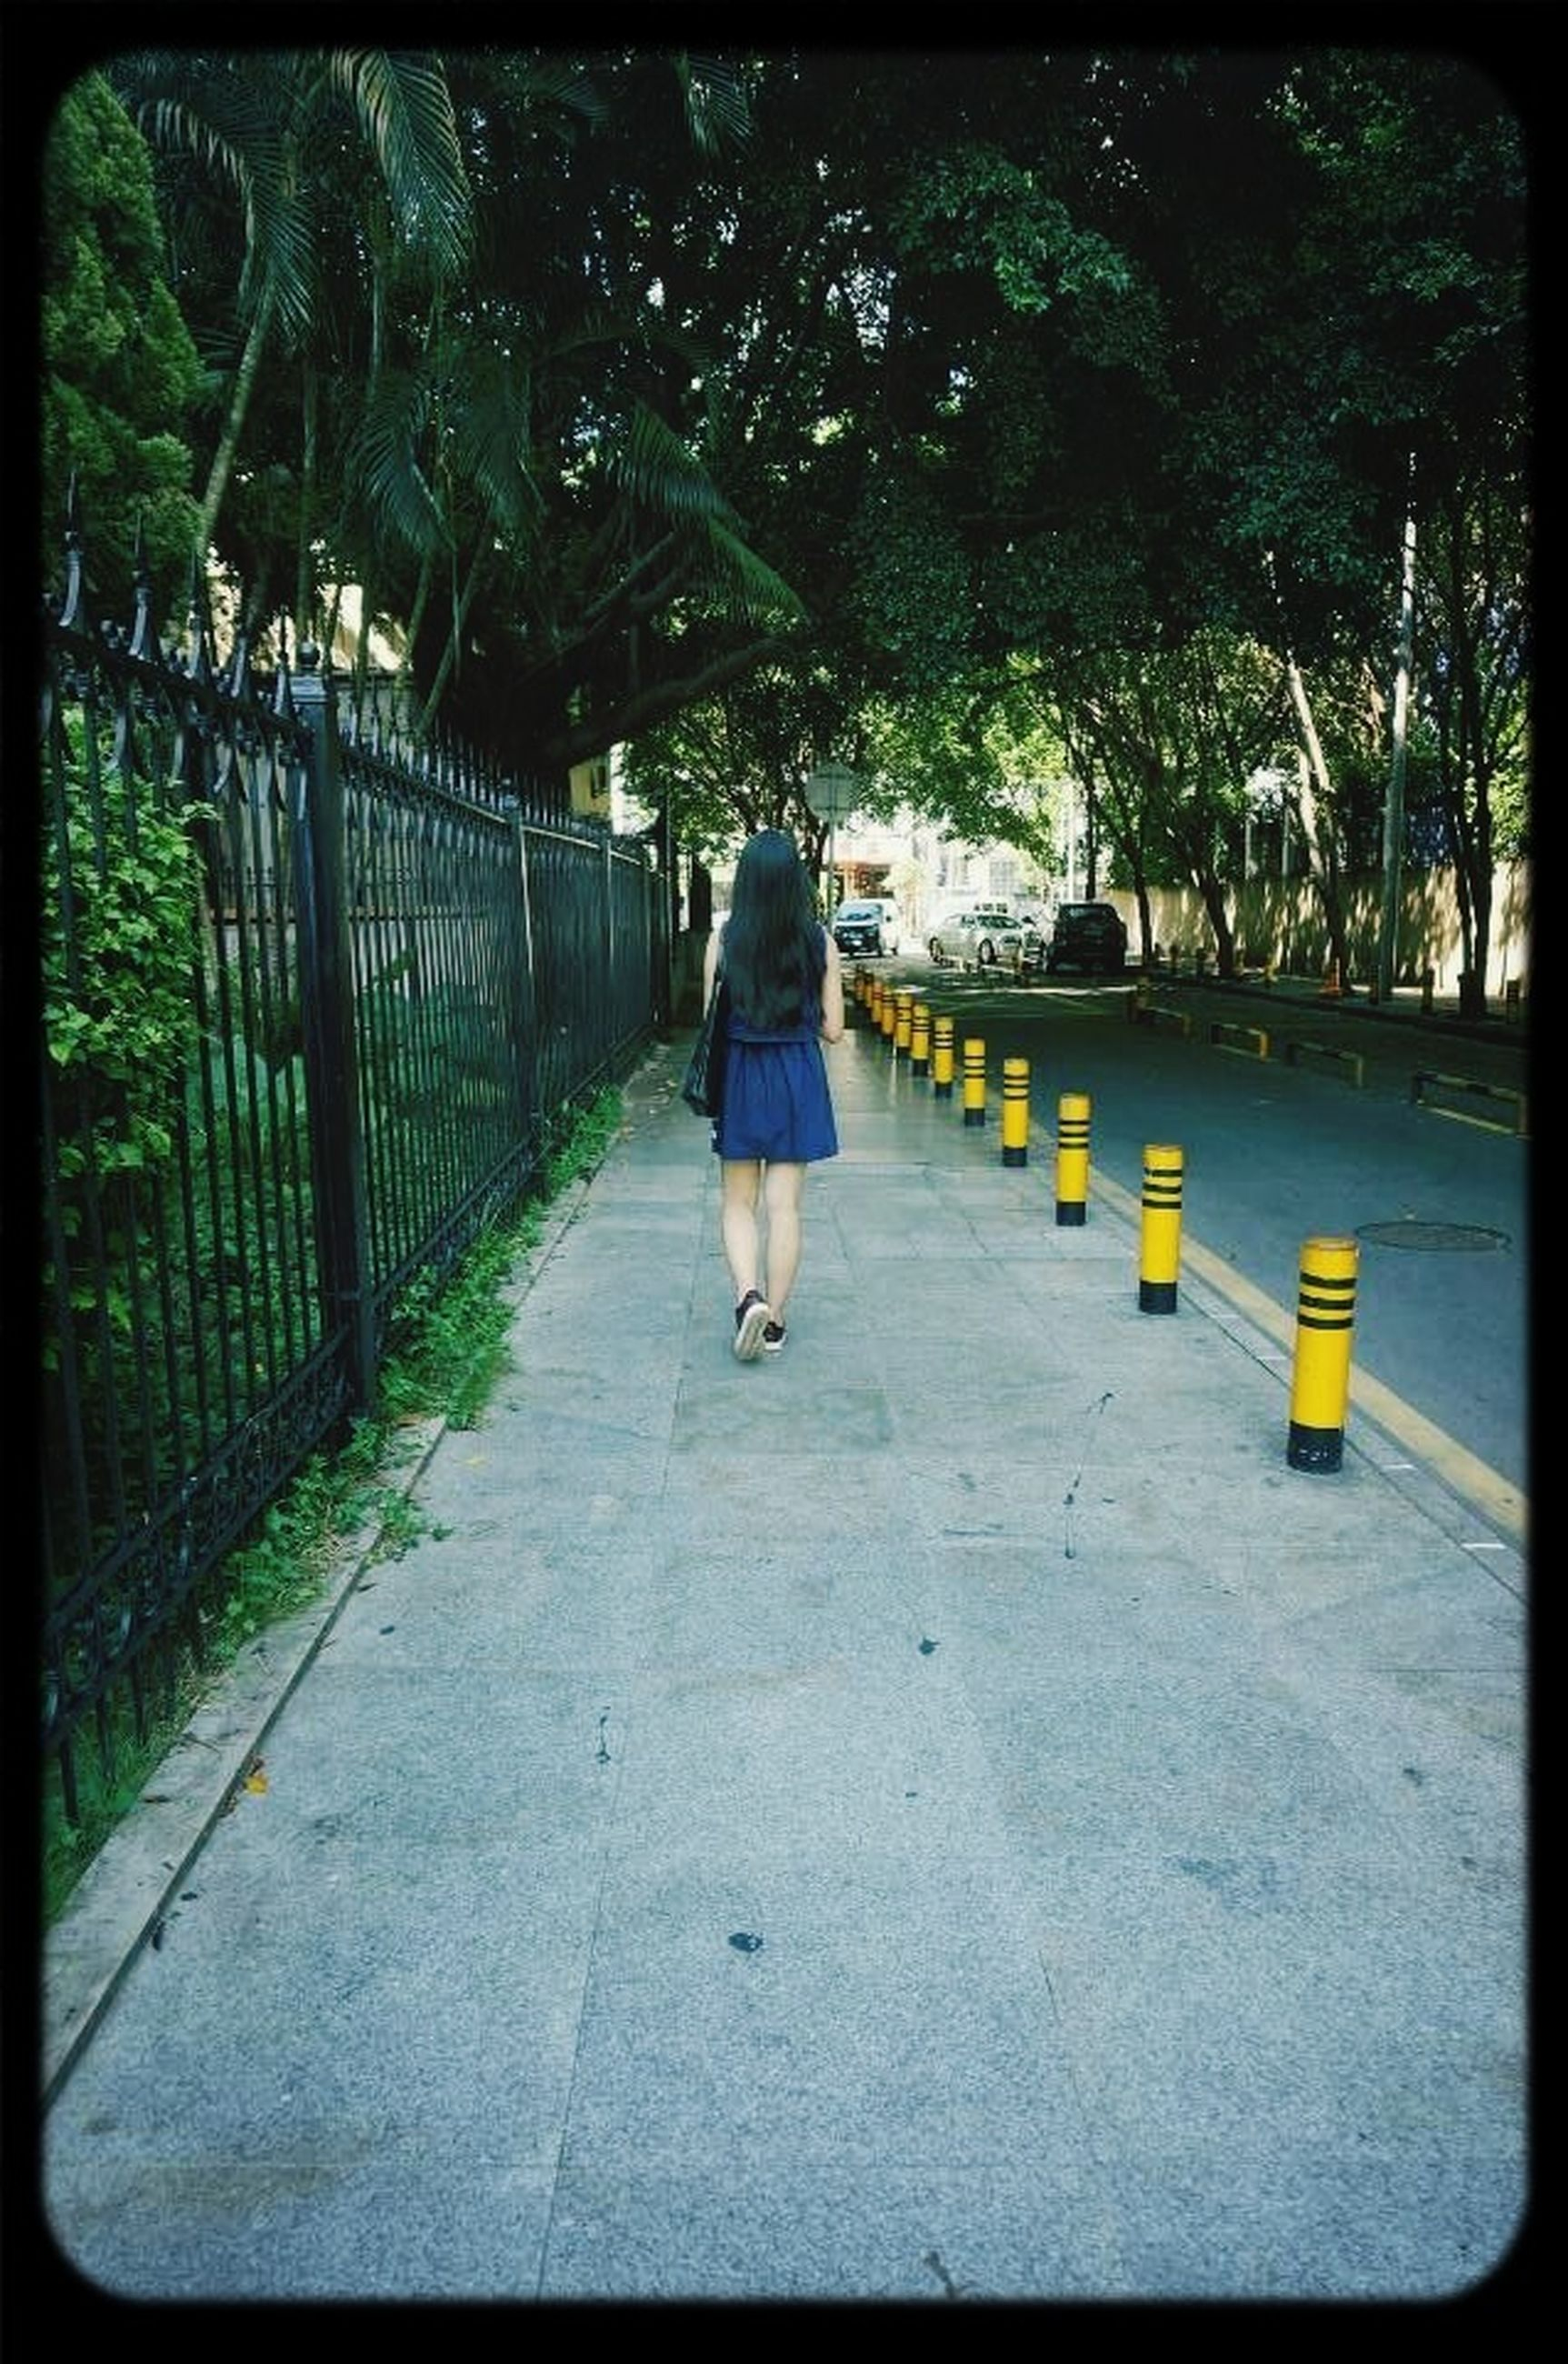 full length, rear view, walking, lifestyles, the way forward, casual clothing, leisure activity, tree, men, person, transfer print, on the move, diminishing perspective, auto post production filter, childhood, footpath, day, standing